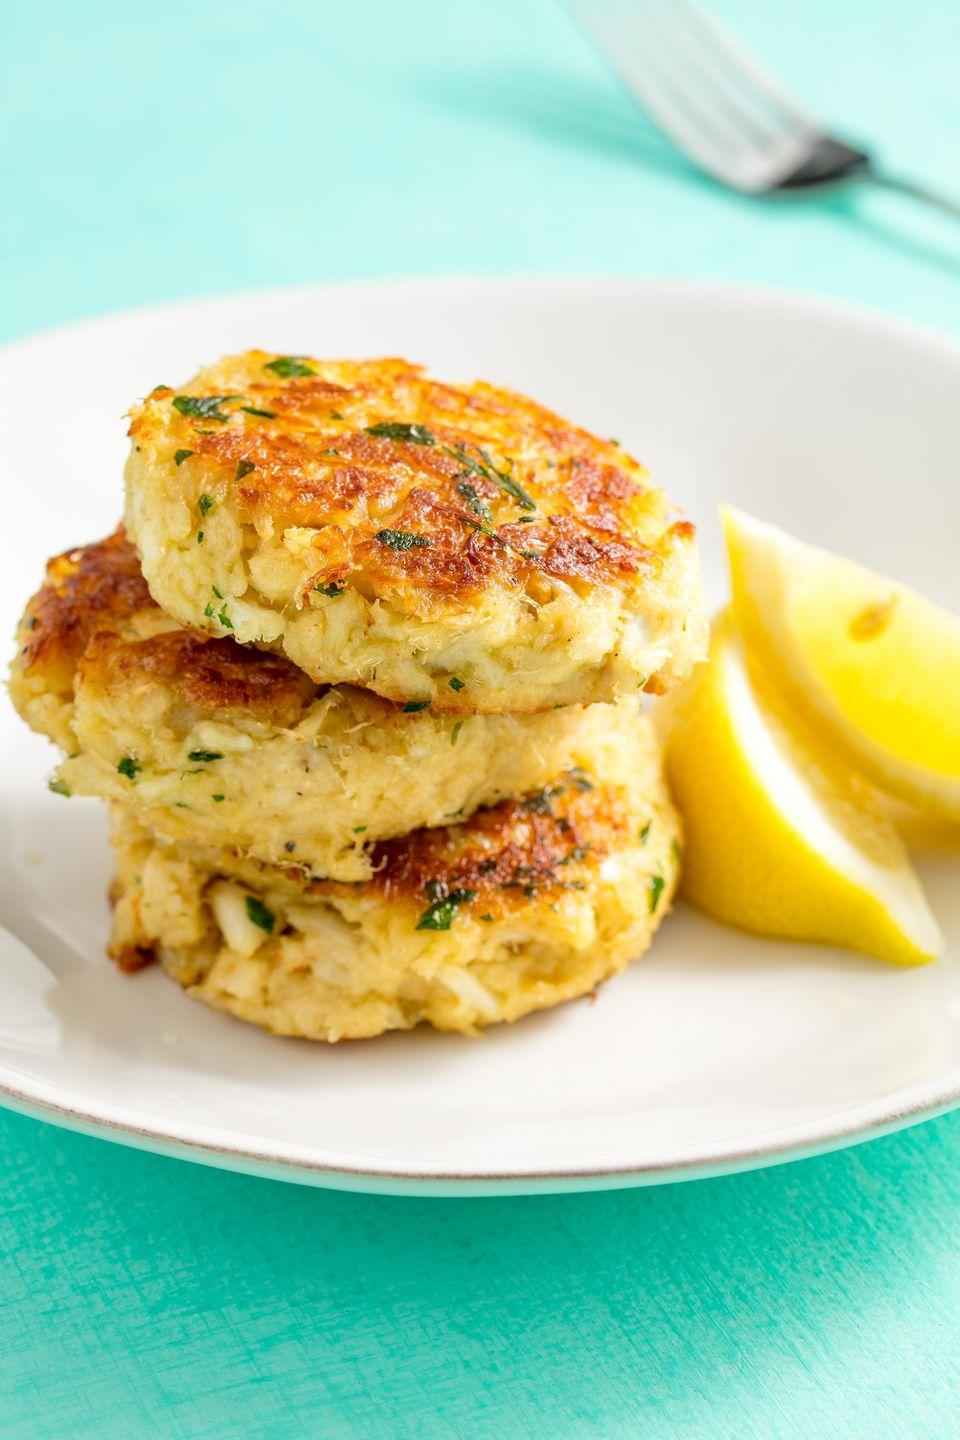 """<p>Feel like you've been transported to Maryland.</p><p>Get the recipe from <a href=""""https://www.delish.com/cooking/recipe-ideas/recipes/a58704/best-crab-cakes-recipe/"""" rel=""""nofollow noopener"""" target=""""_blank"""" data-ylk=""""slk:Delish"""" class=""""link rapid-noclick-resp"""">Delish</a>.</p>"""